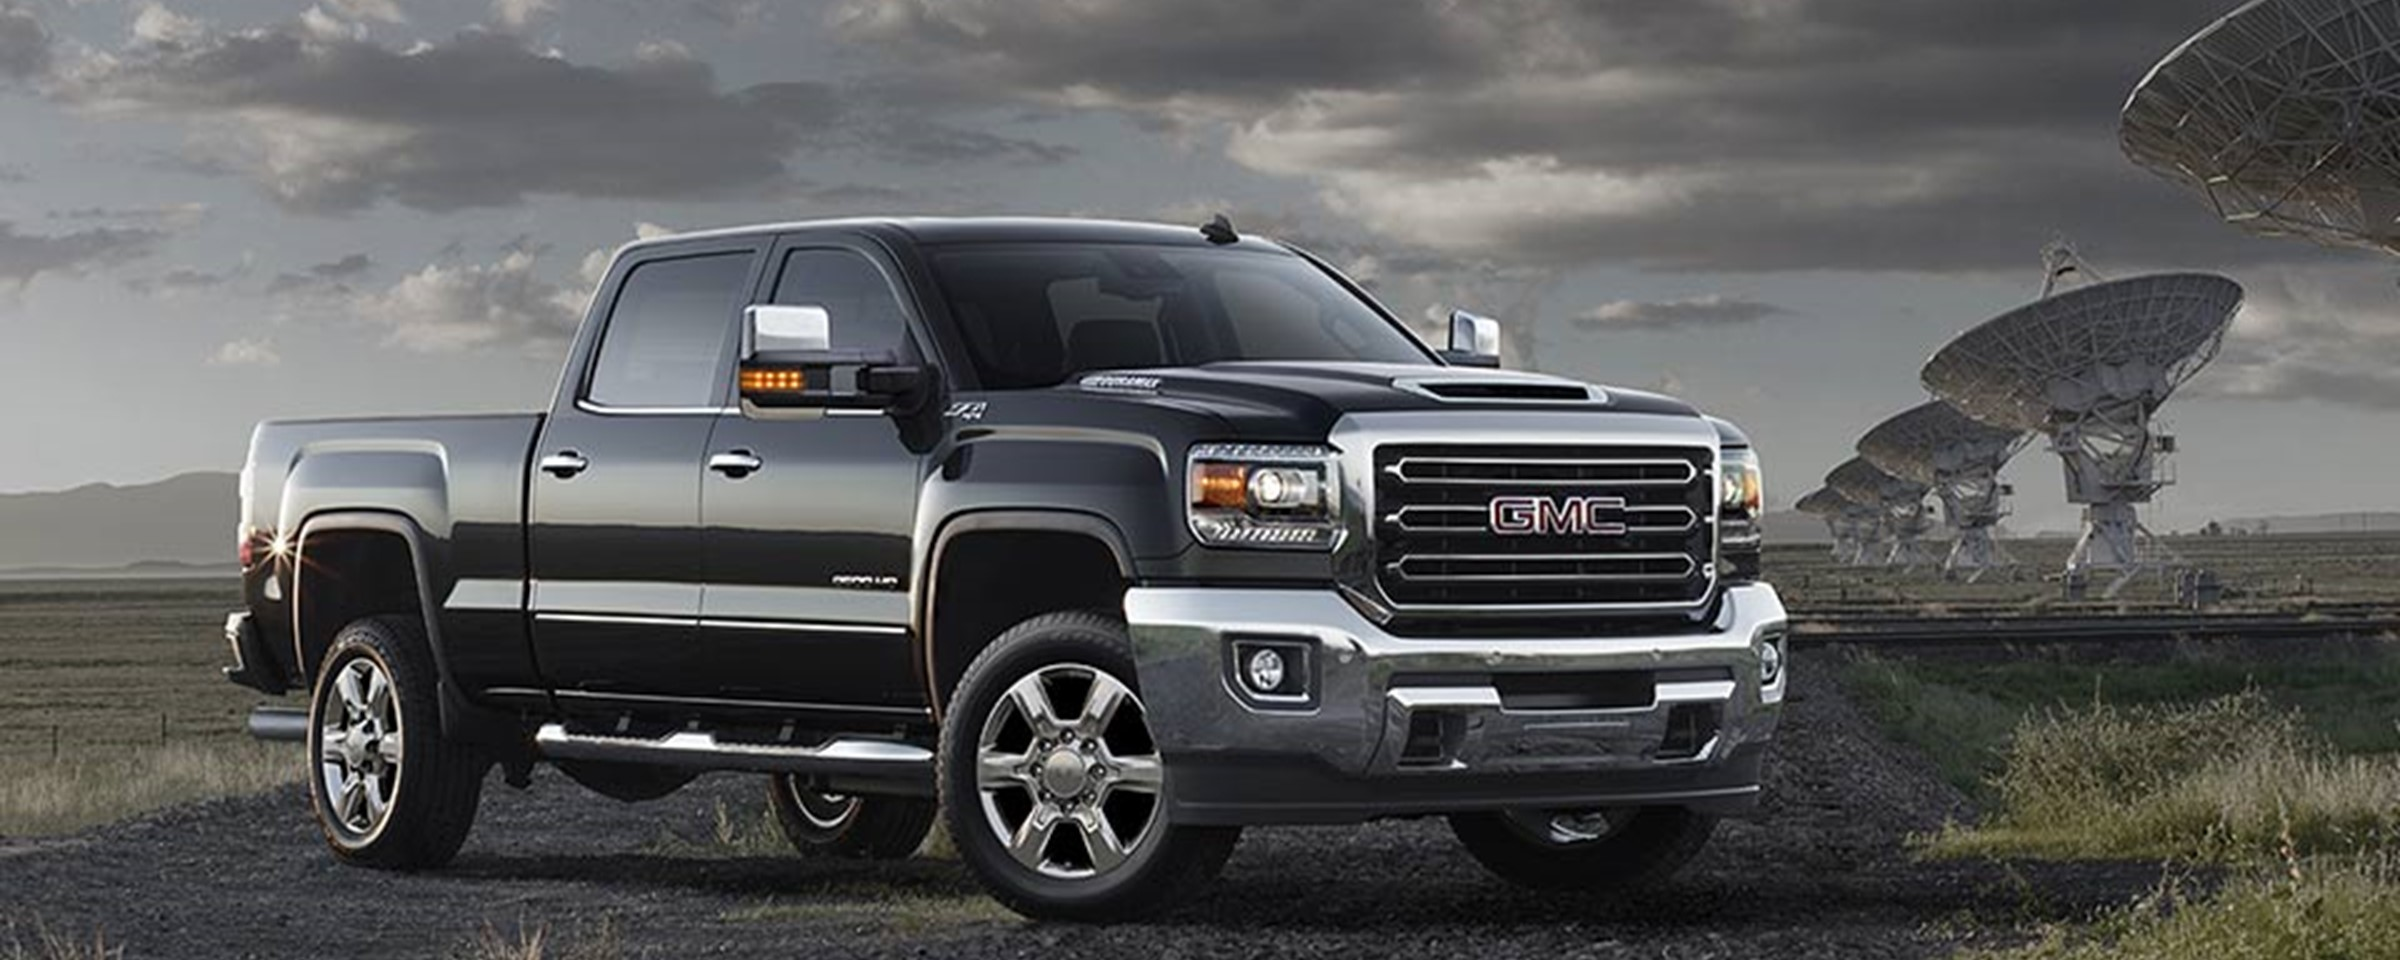 six must have accessories for your gmc sierra 2500 hd baker motor company. Black Bedroom Furniture Sets. Home Design Ideas